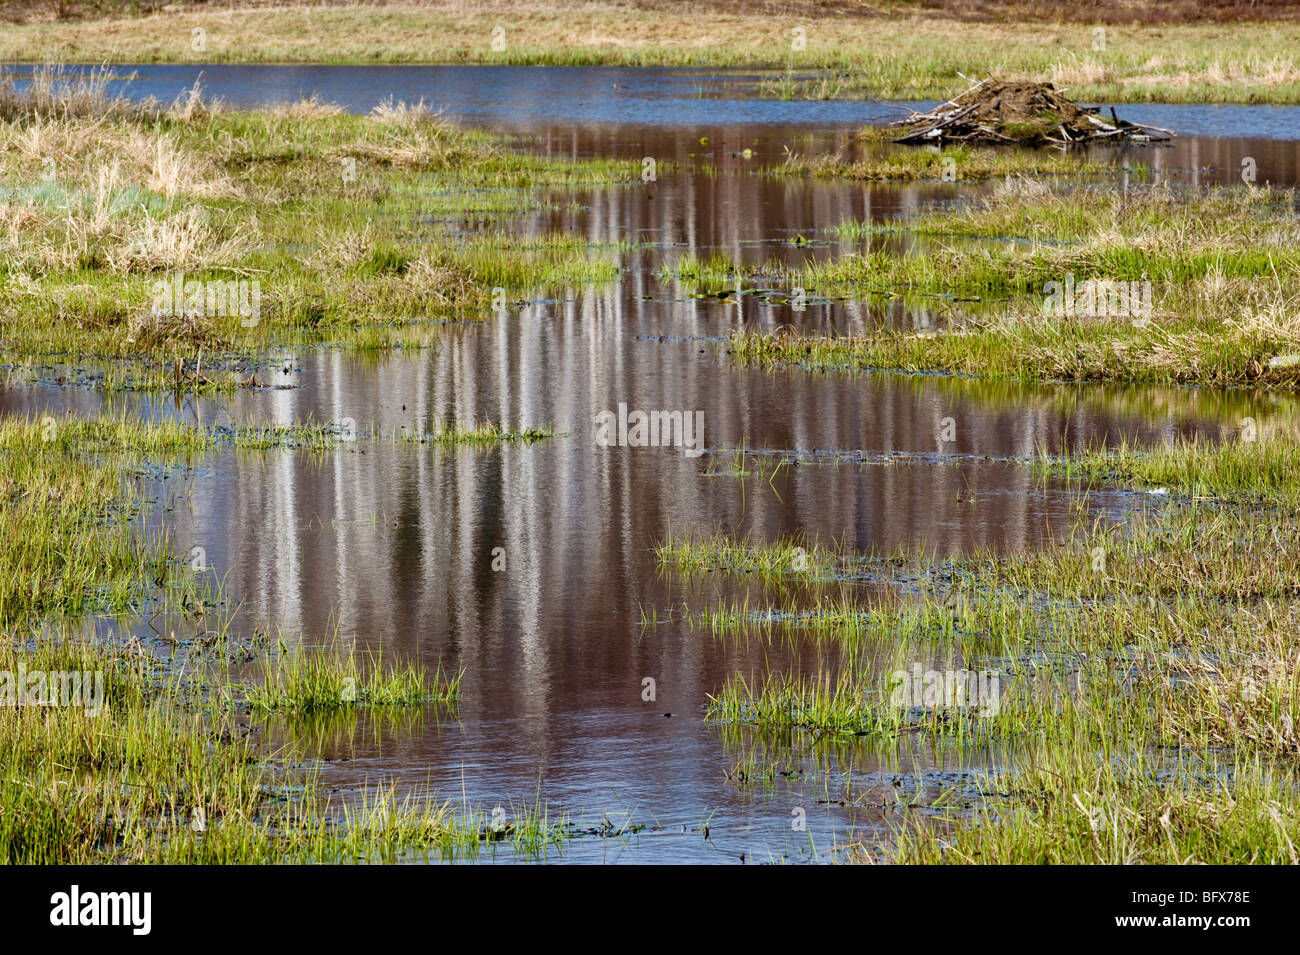 Reflections in beaverpond water channel in early spring, Greater Sudbury, Ontario, Canada - Stock Image